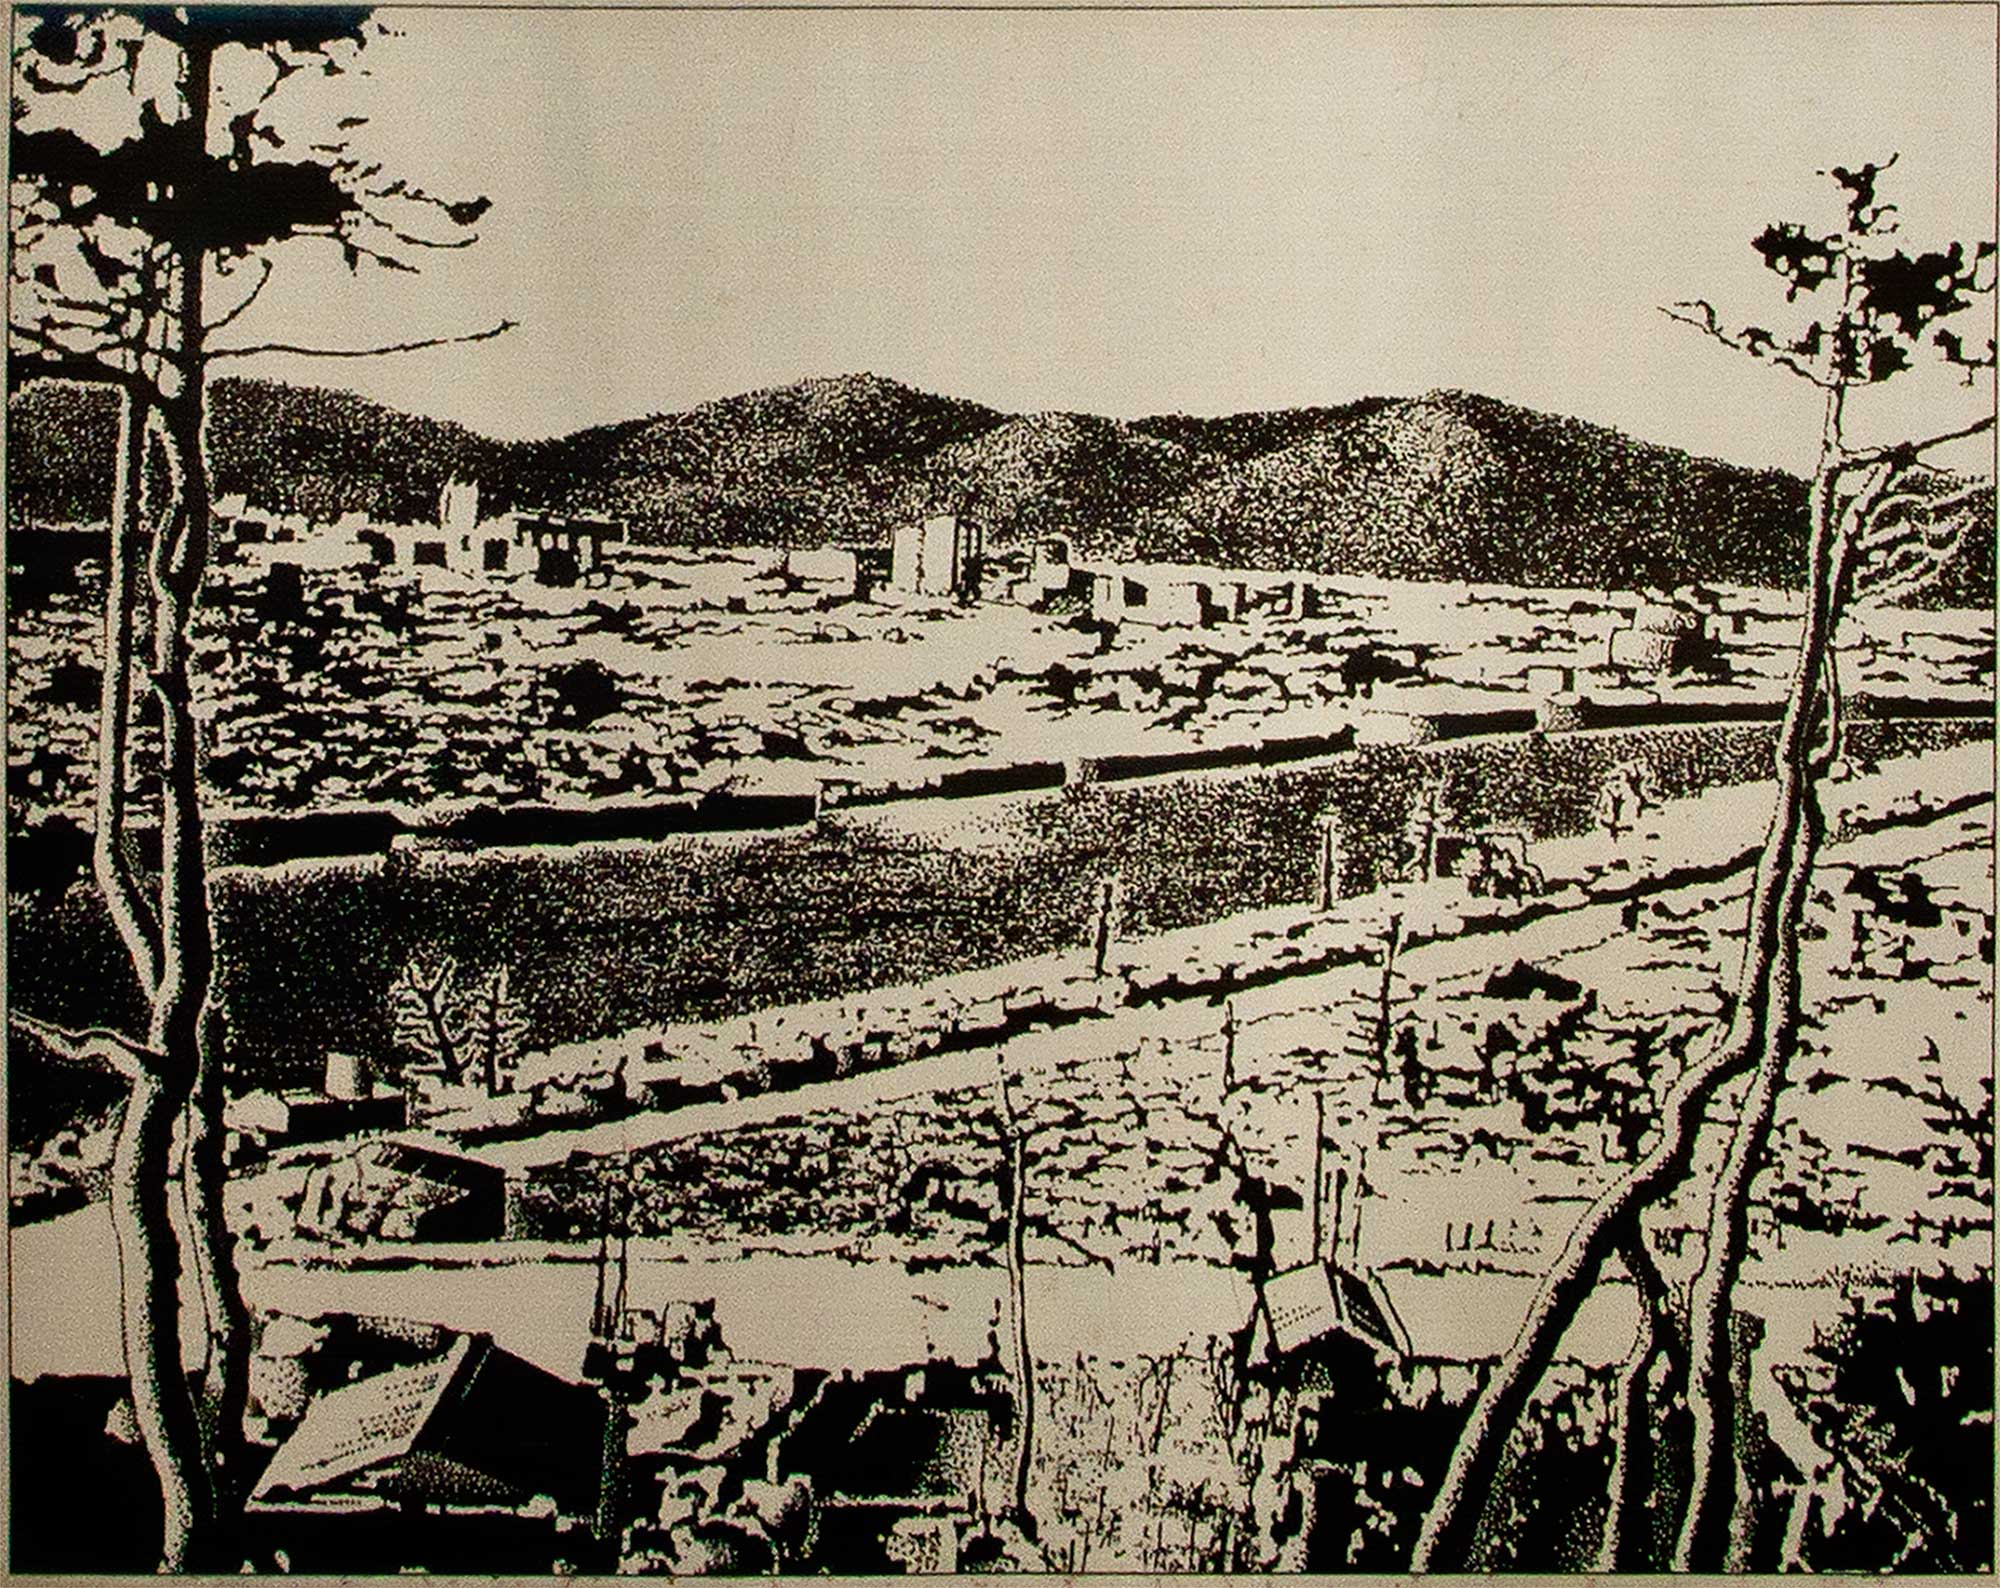 Devastated City Center, From Hijiyama Hill, Hiroshima, 2000 meters from the hypocenter, photograph by the U.S. Army, October 1945, March 2013, Chromogenic print, 9 x 12 inch.